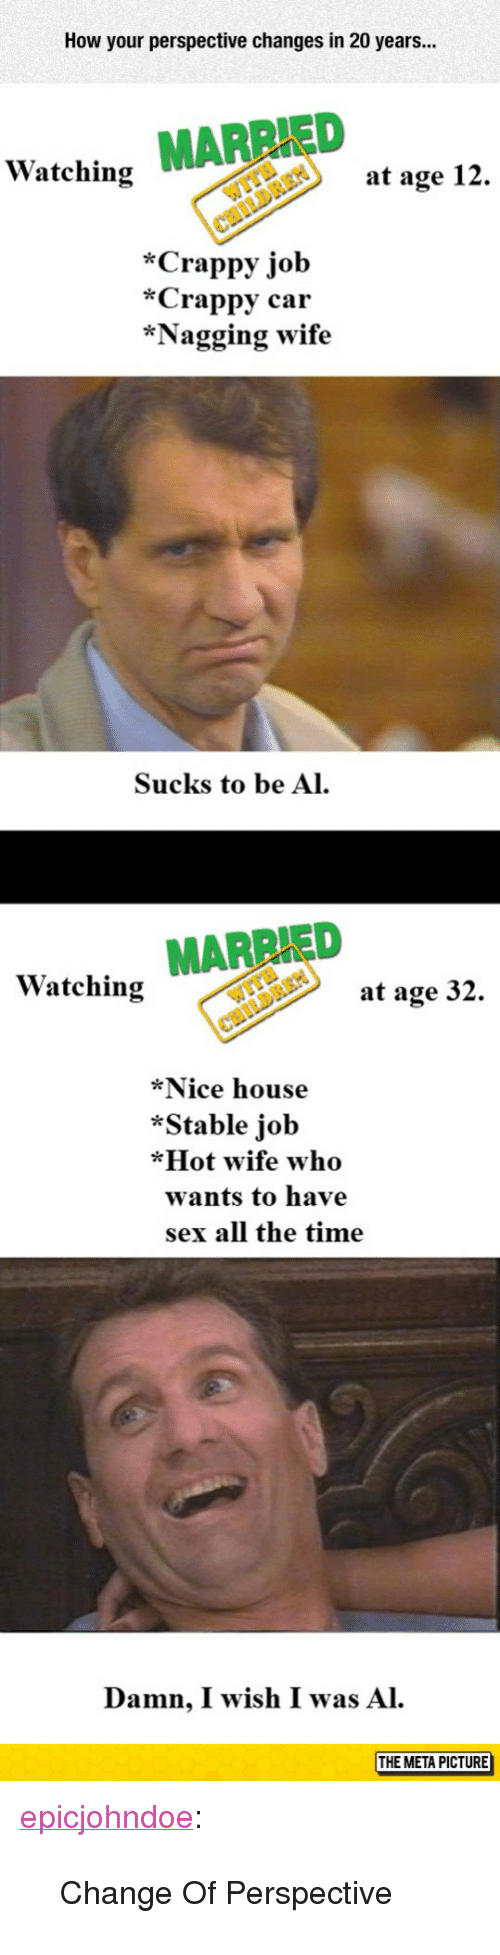 """Sex, Tumblr, and Blog: How your perspective changes in 20 years...  ED  Watching  at age 12.  *Crappy job  *Crappy car  *Nagging wife  Sucks to be Al  Watching MARRIED  at age 32.  *Nice house  *Stable job  *Hot wife who  wants to have  sex all the time  Damn, I wish I was Al.  THE META PICTURE  МЕТАРіст <p><a href=""""https://epicjohndoe.tumblr.com/post/172655072374/change-of-perspective"""" class=""""tumblr_blog"""">epicjohndoe</a>:</p>  <blockquote><p>Change Of Perspective</p></blockquote>"""